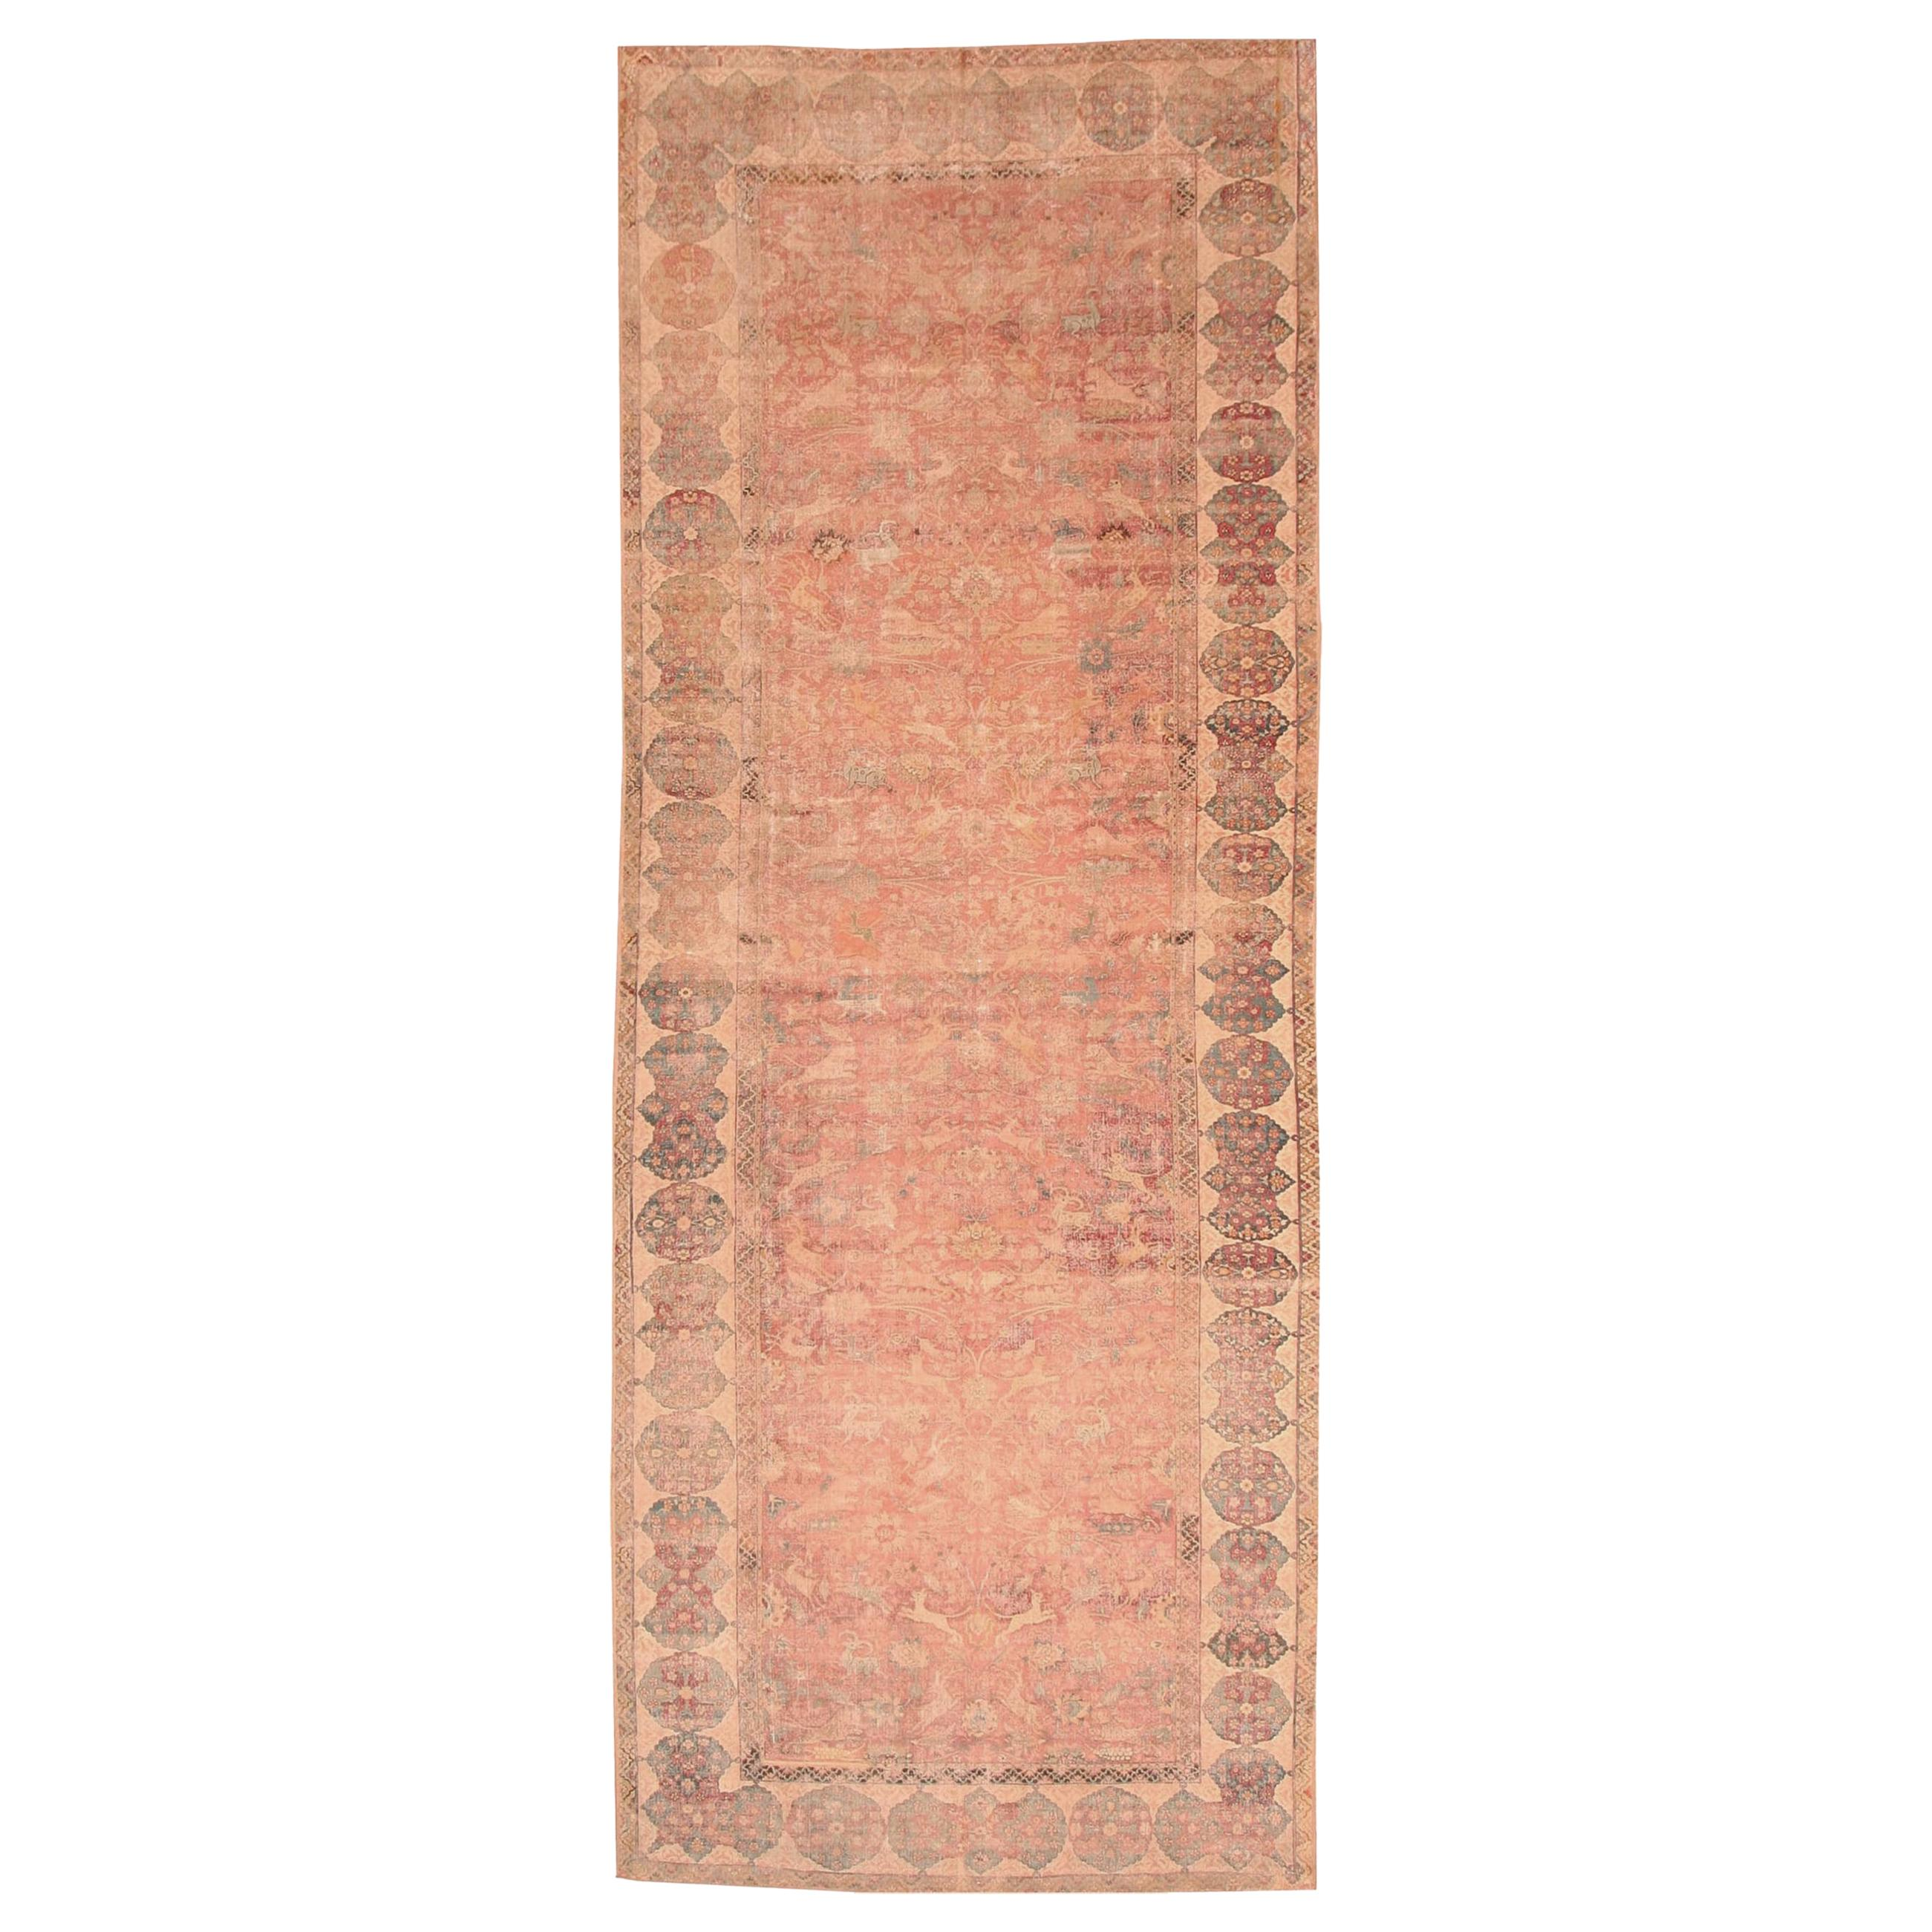 17th Century Isfahan Persian Rug. Size: 7 ft 7 in x 20 ft 4 in (2.31 m x 6.2 m)